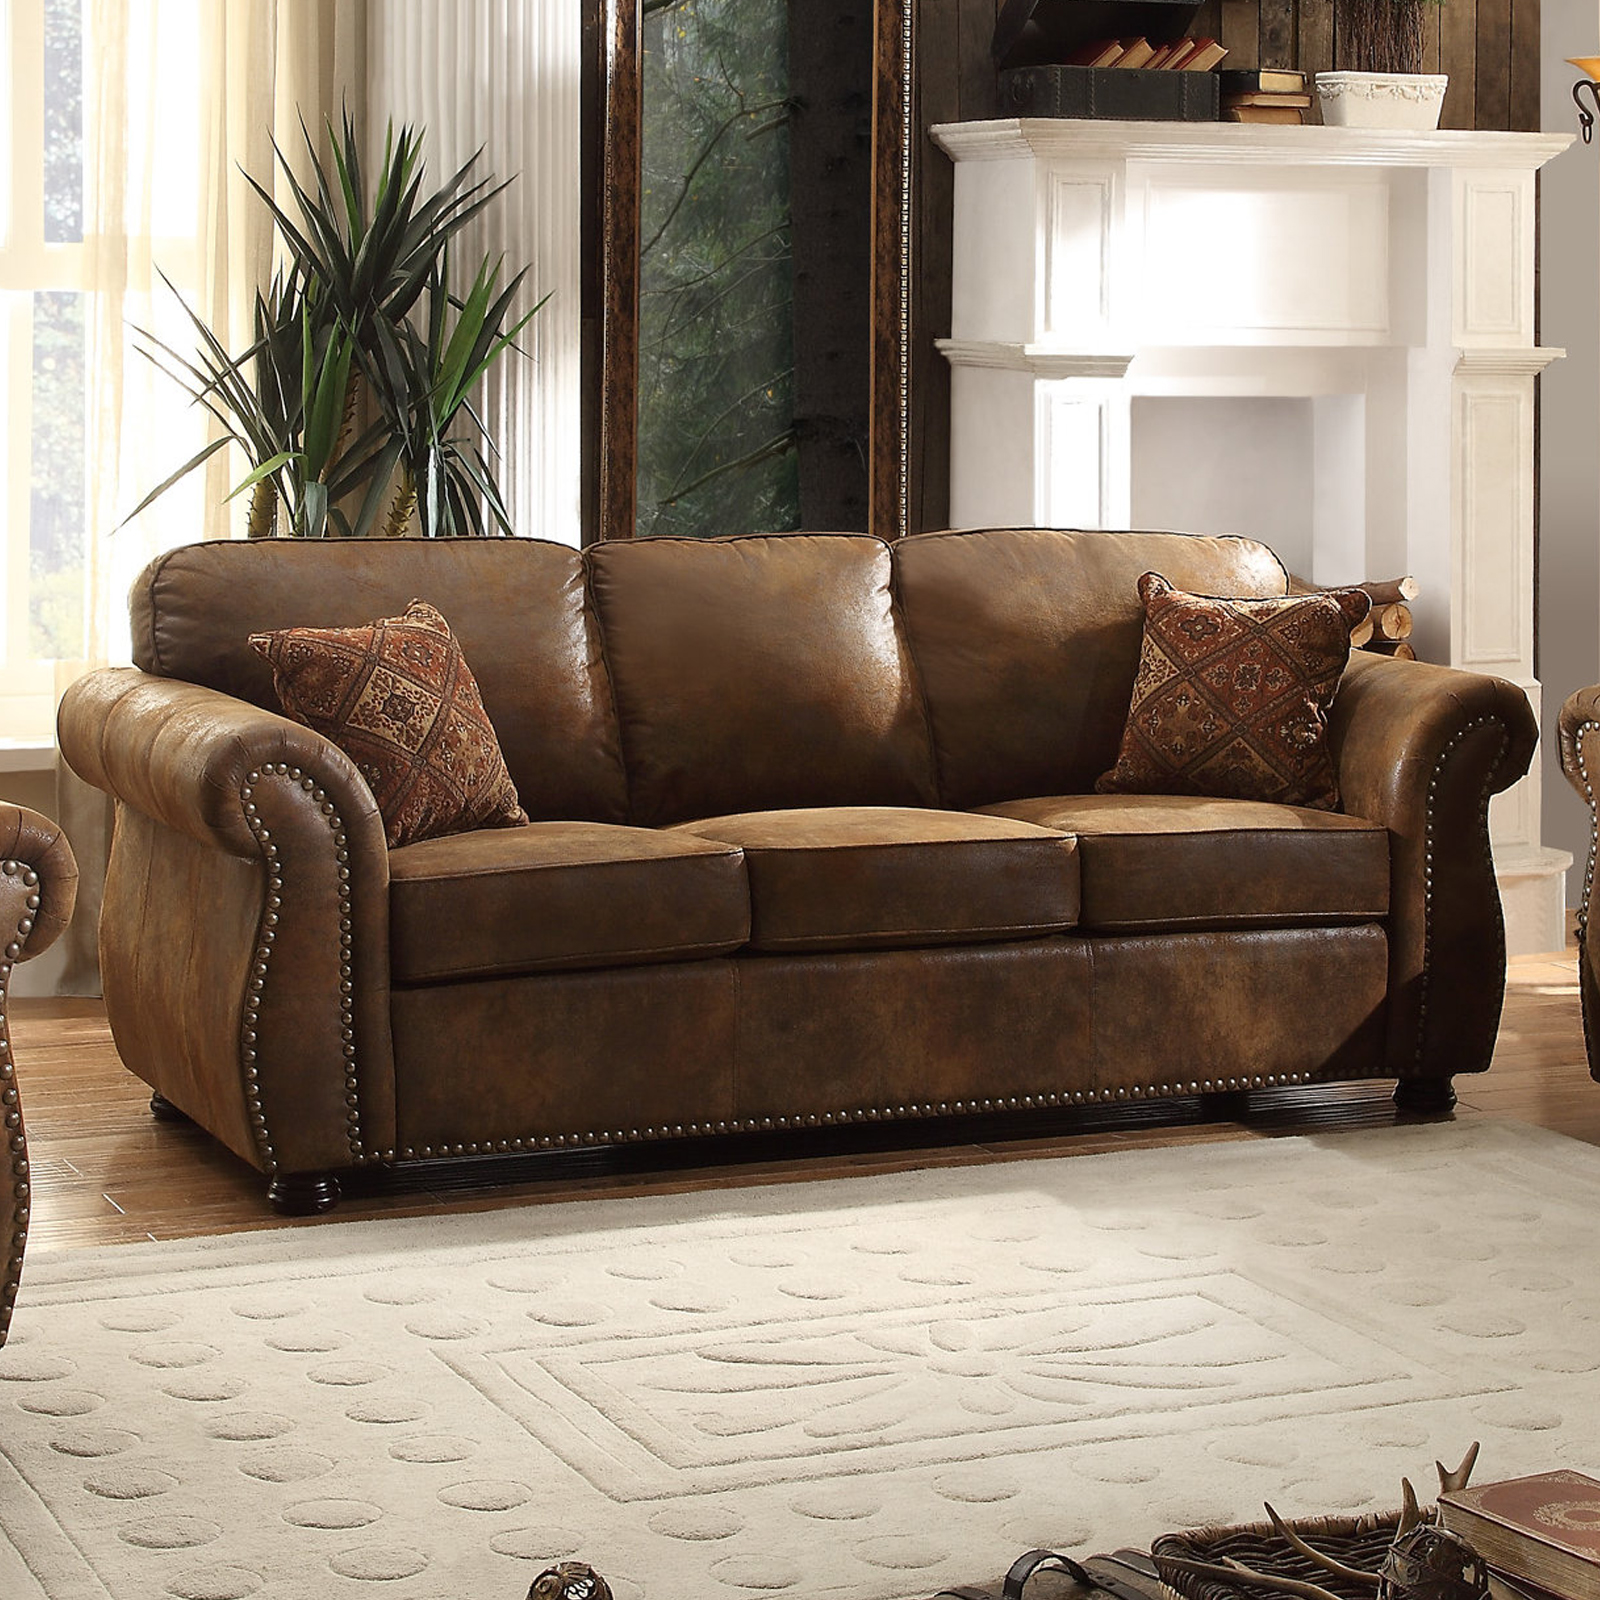 espresso bonded leather reclining sofa loveseat set childs bed chair living room sets   collections - sears